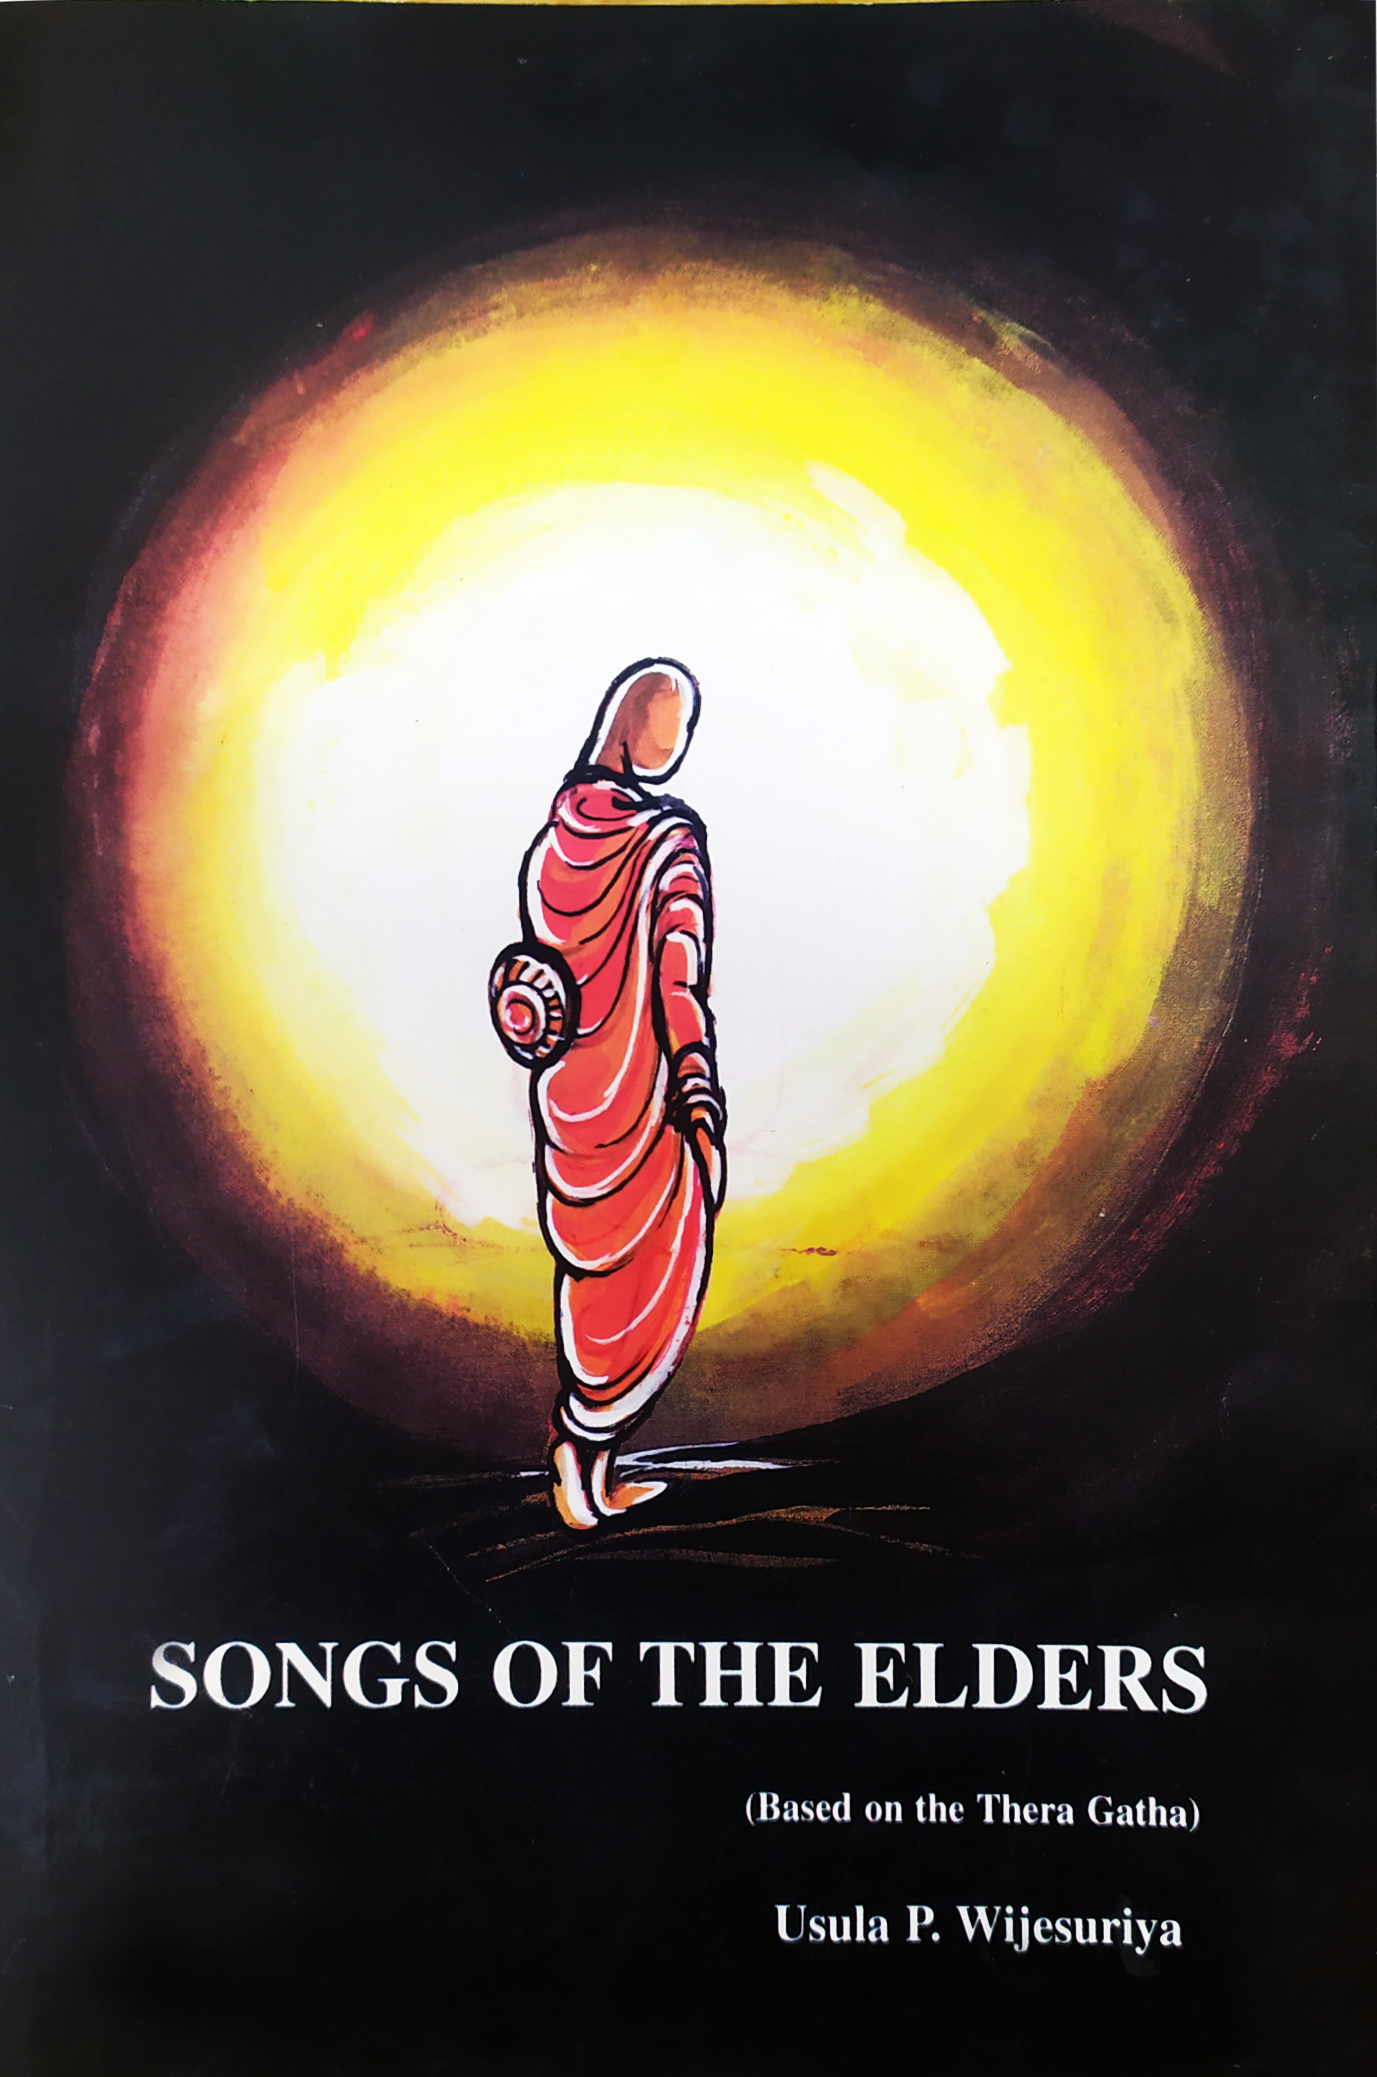 Songs of the Elders